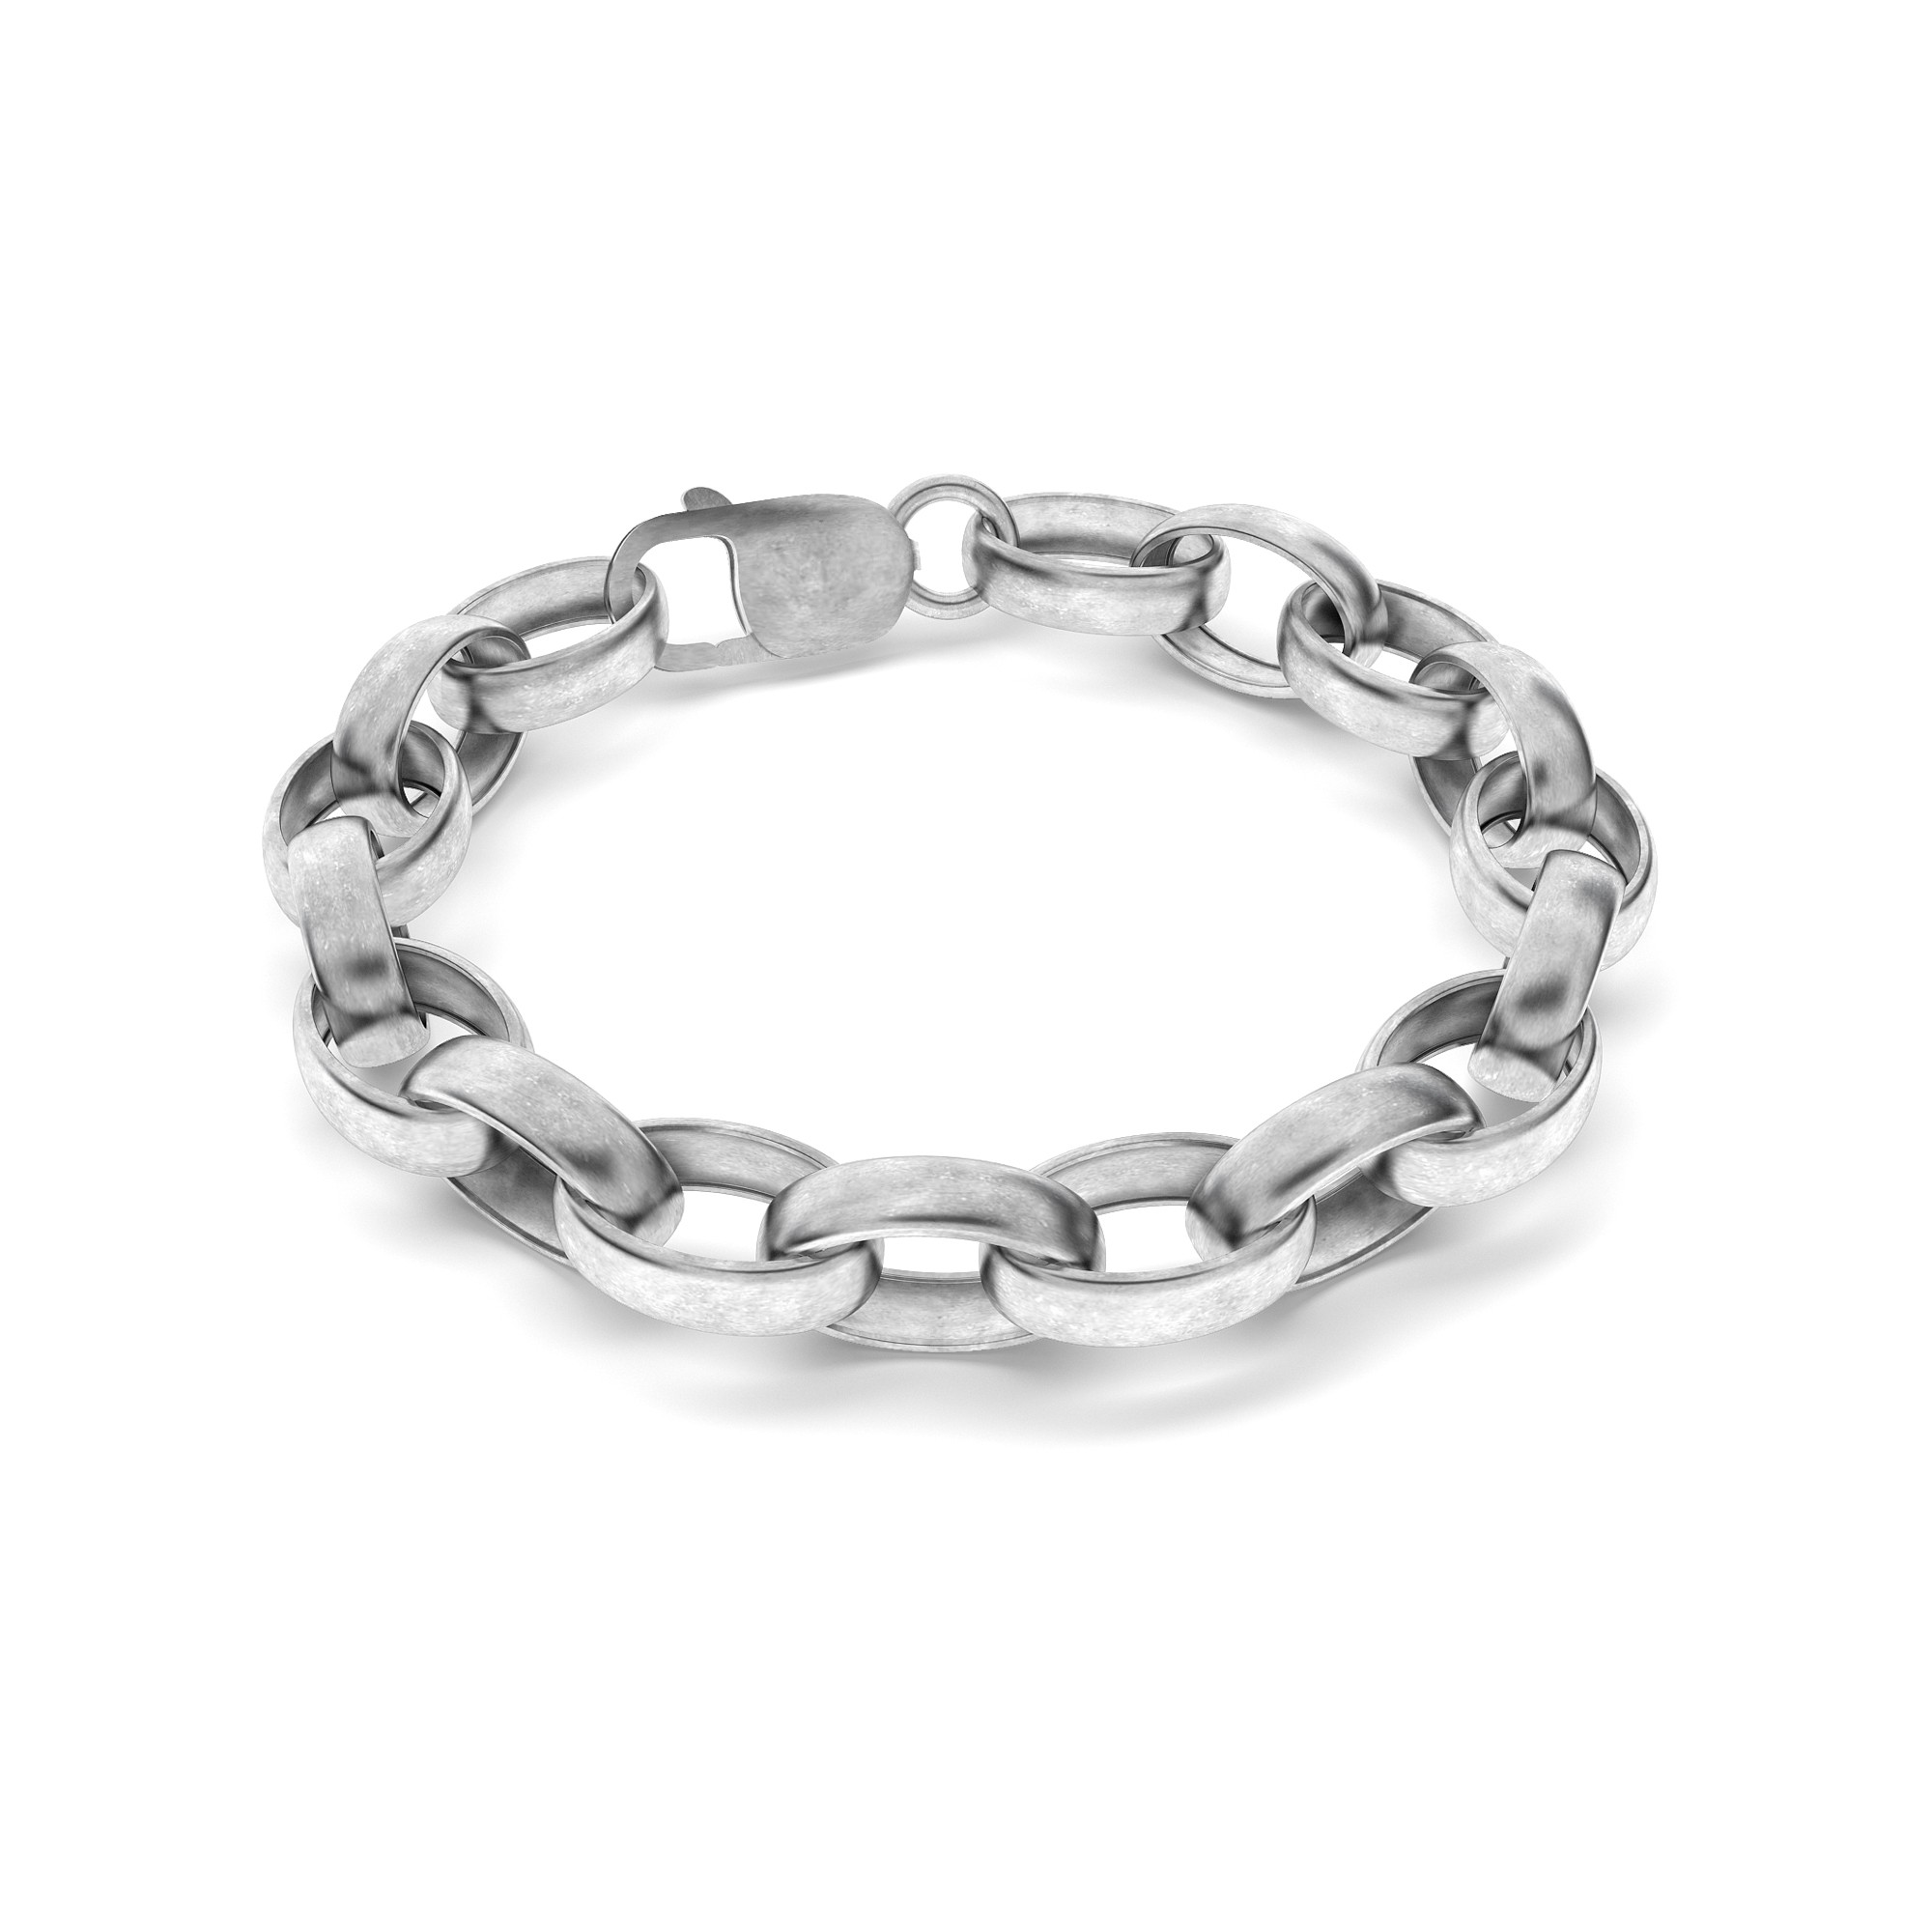 Sterling silver choker necklace 925